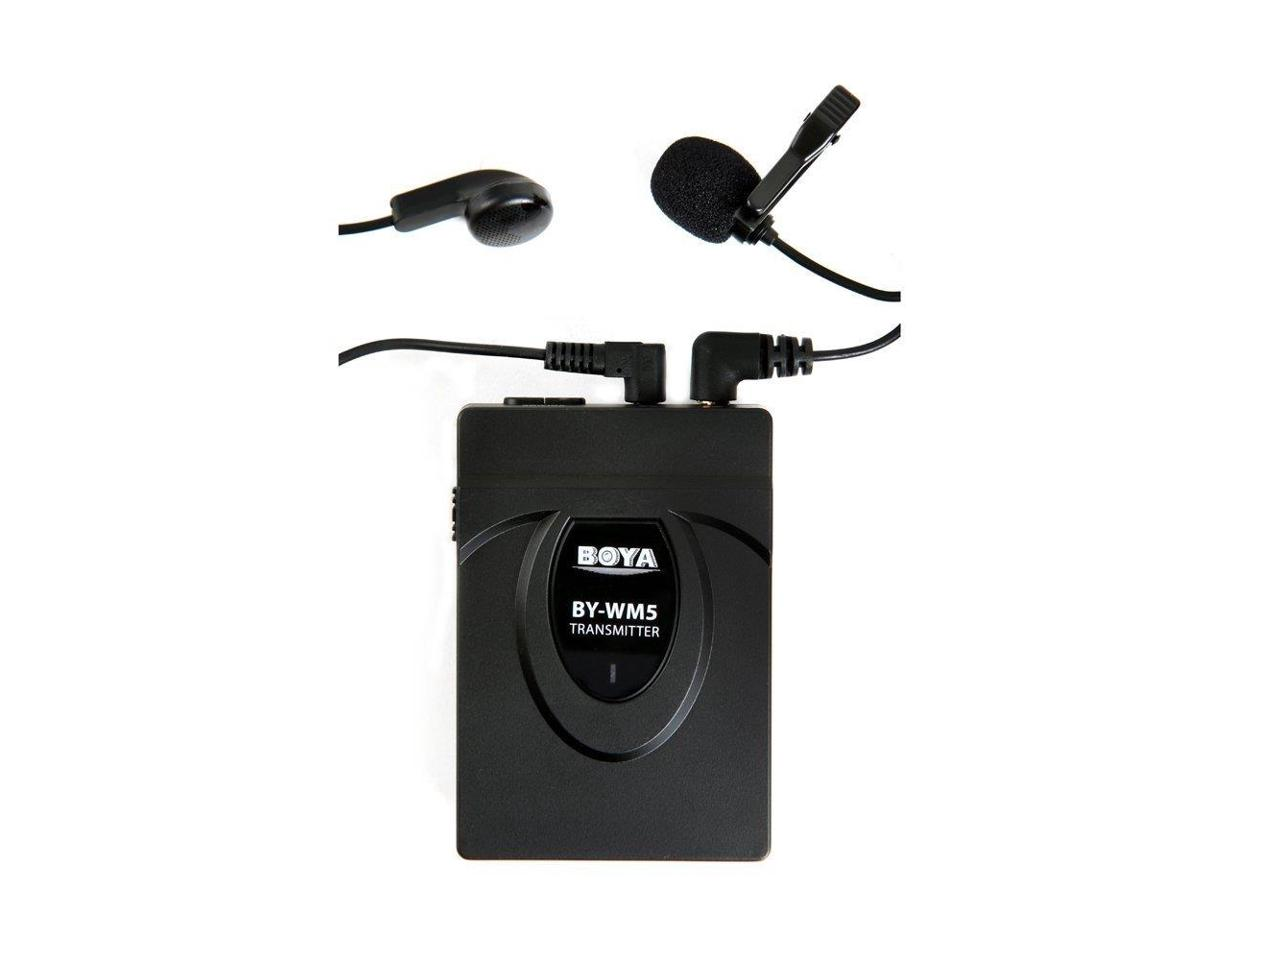 BOYA BY-WM5 Pro Wireless Lavalier Microphone Microphone System for Canon Nikon Sony DSLR... by